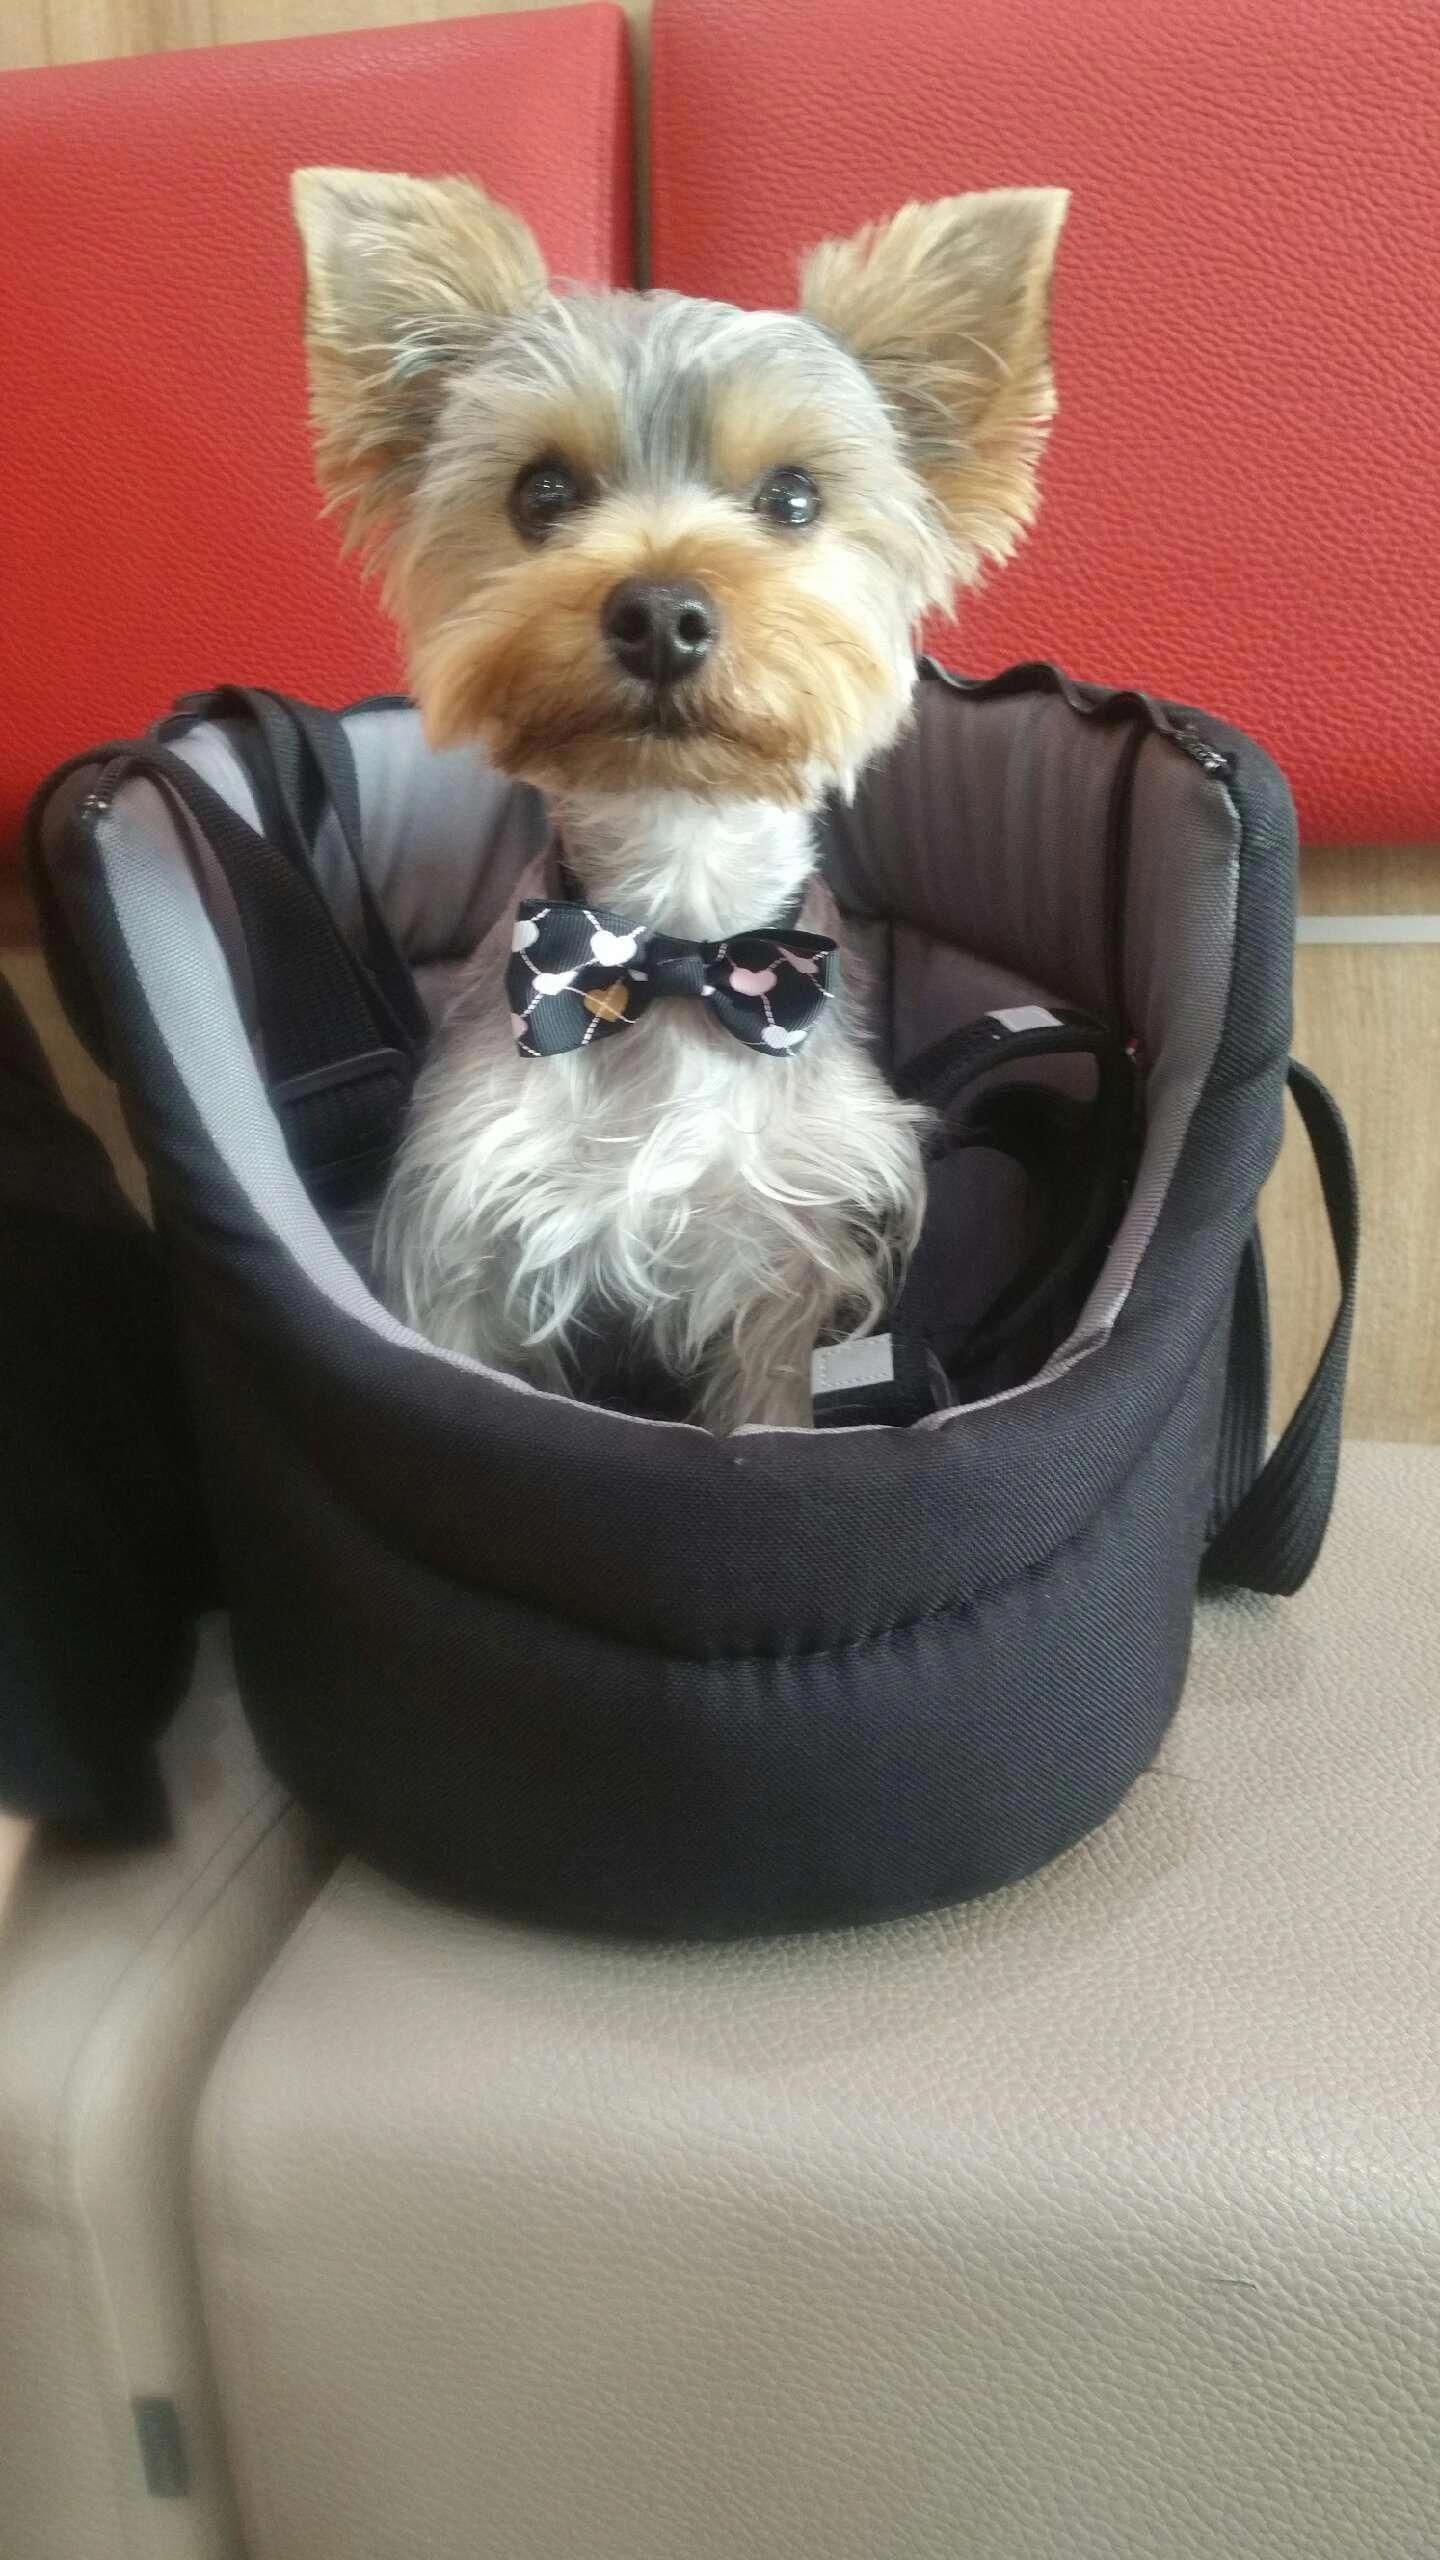 Yorkie Yorkshire Terrier York Yorkis Yorkshireterrierfemale Yorkshire Terrier Yorkshire Terrier Puppies Top Dog Breeds